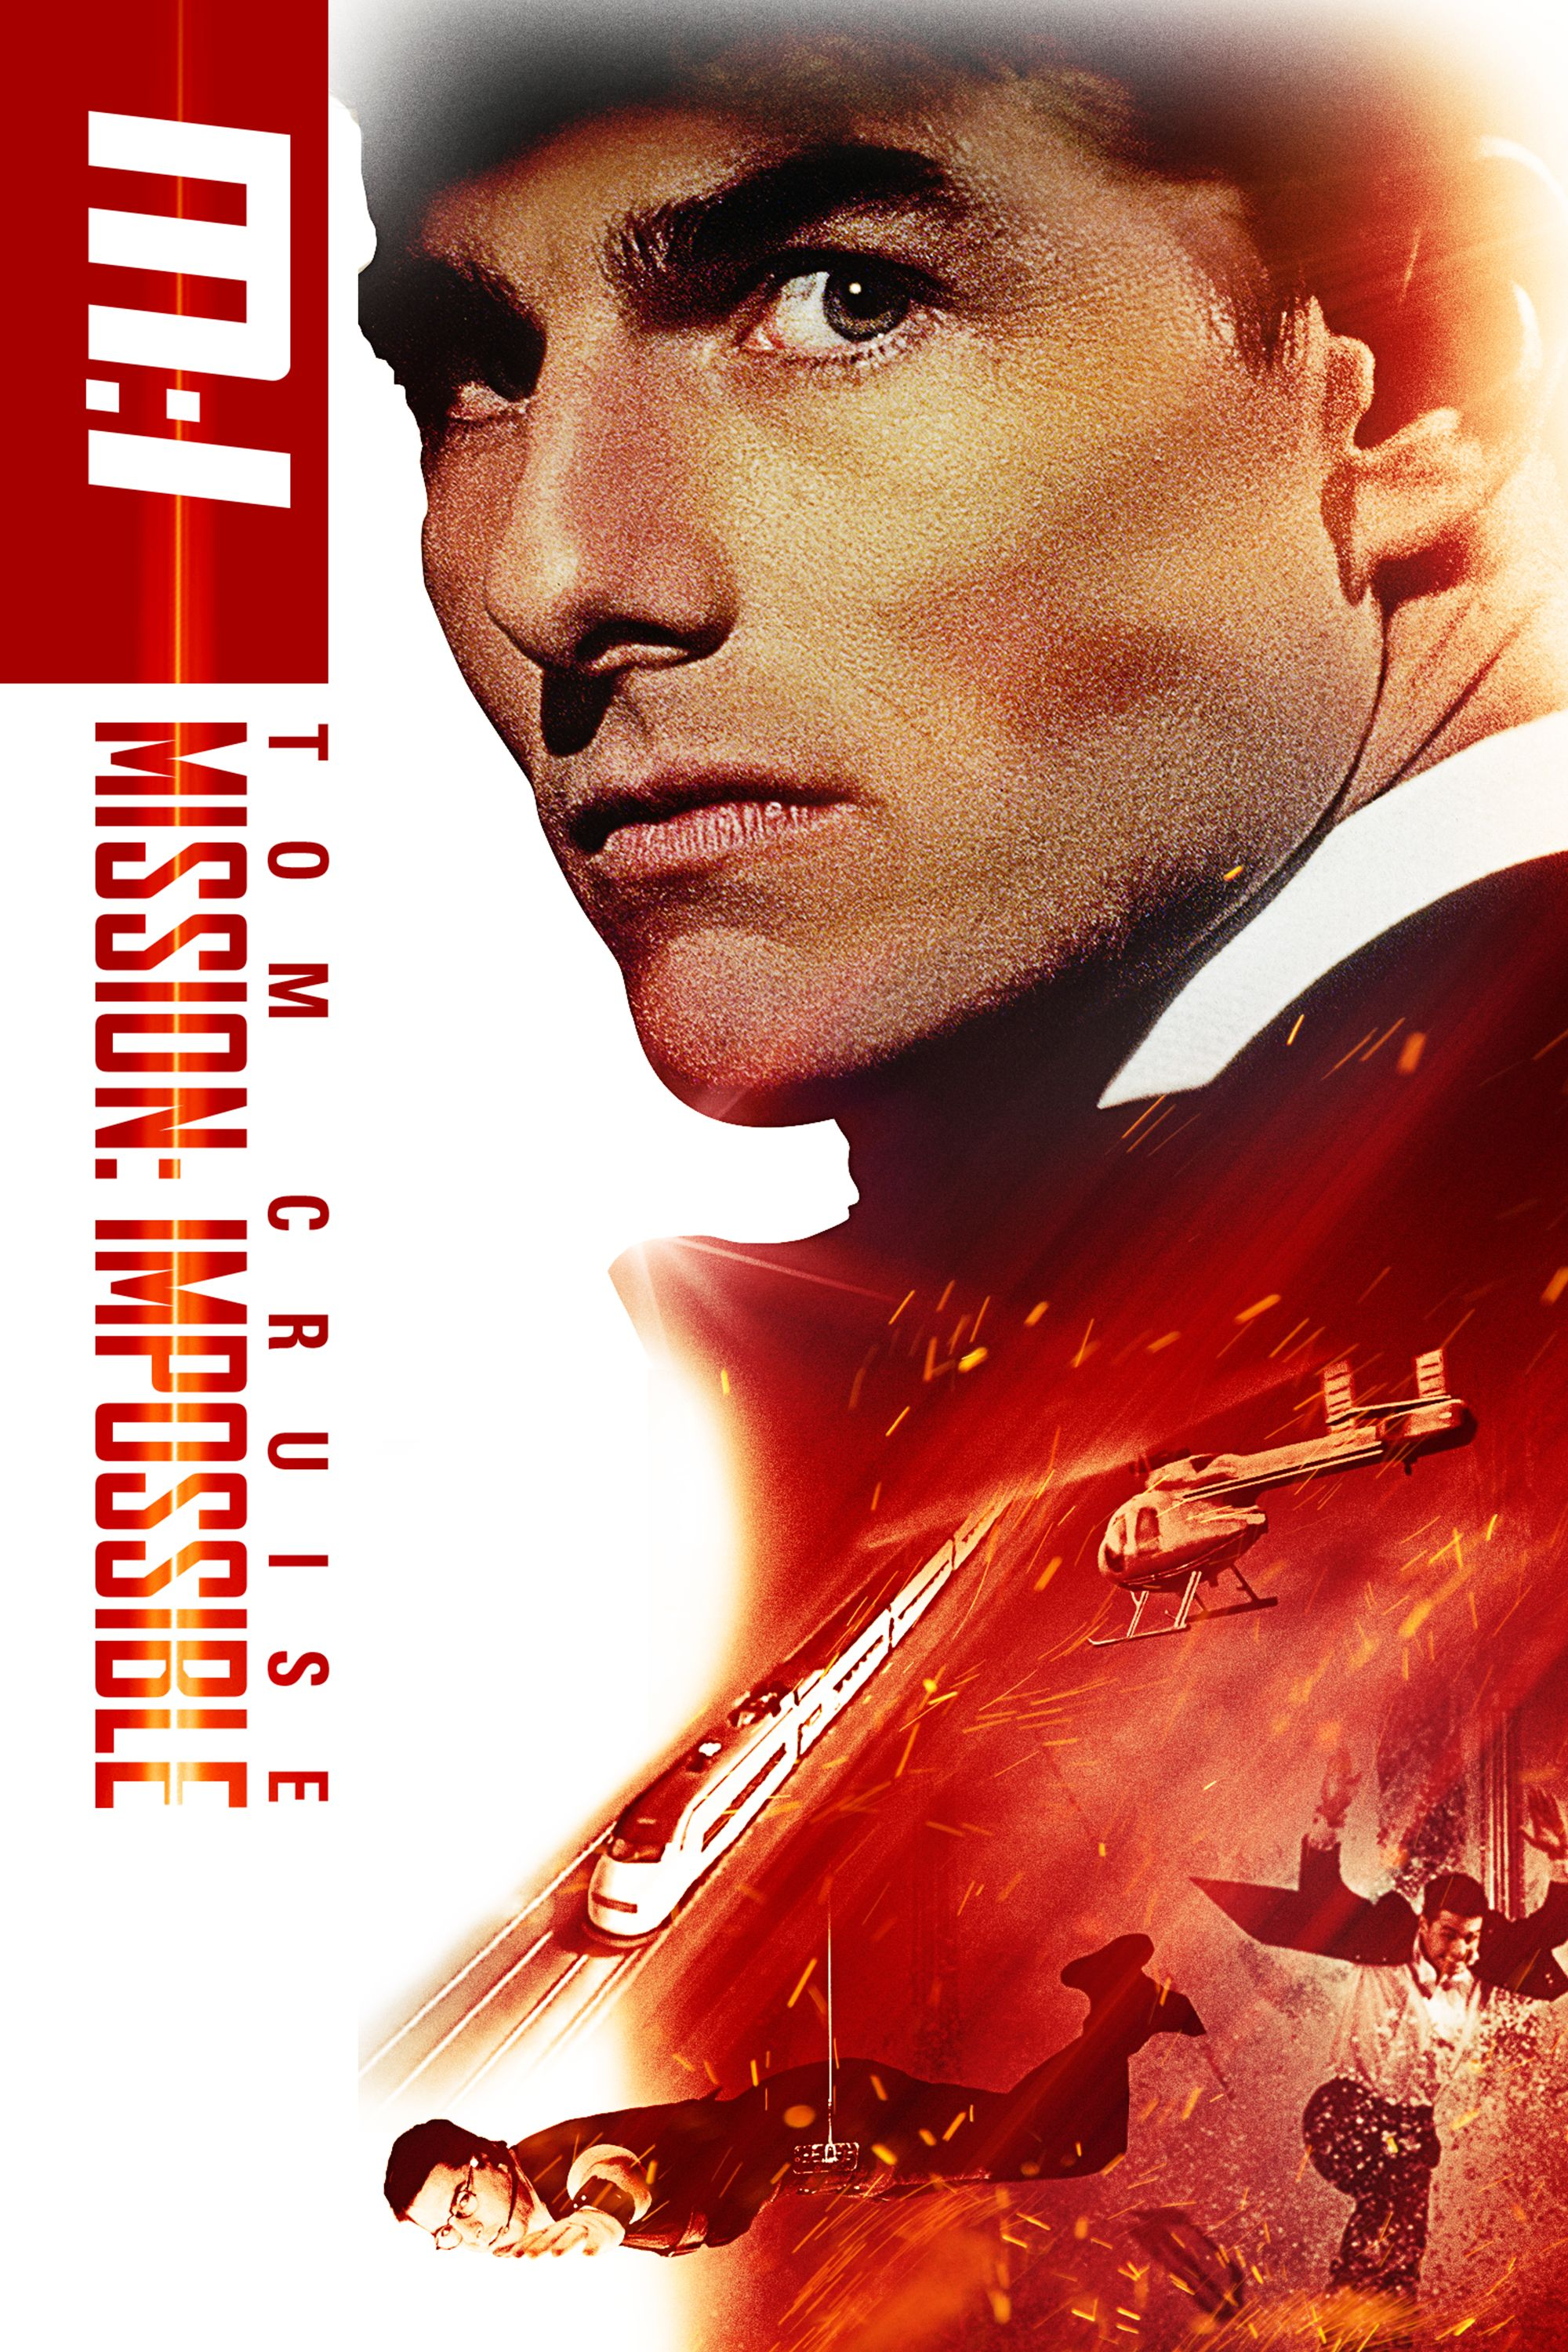 Mission Impossible 1 Films complets gratuits, Tom